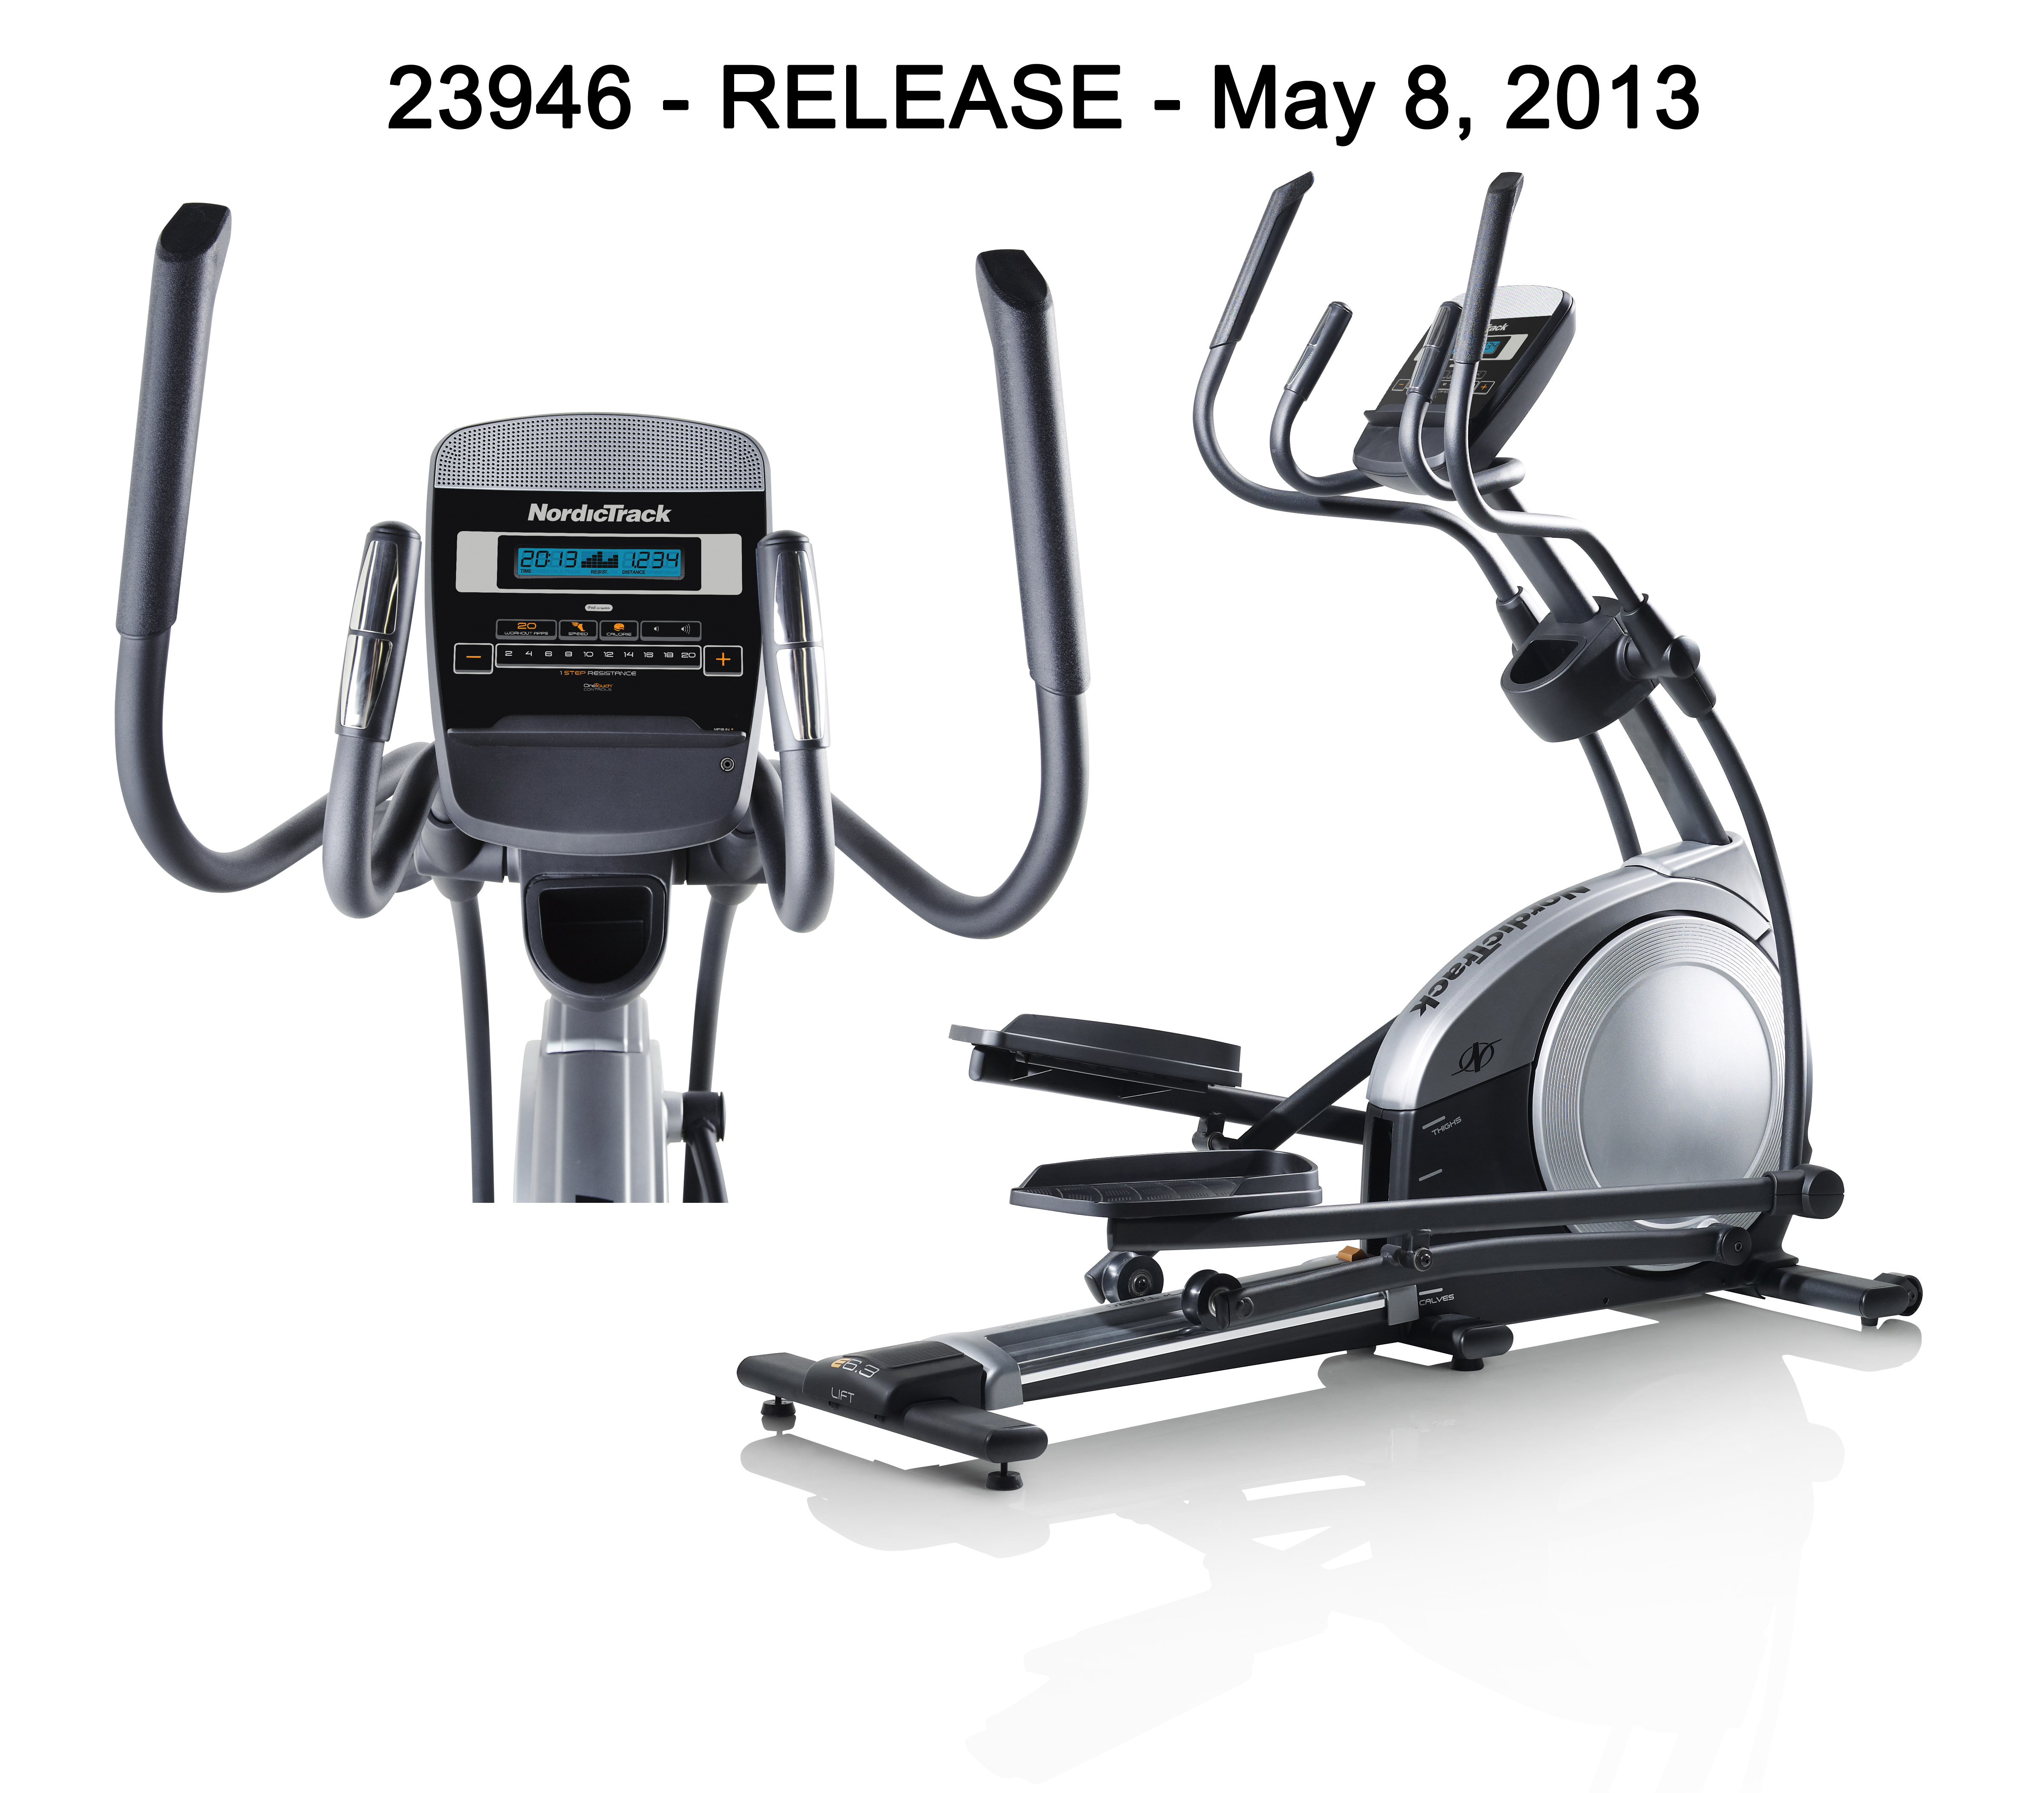 ifit with google maps with Equipment on 71872 Velo Google Maps Tour De France Simulation furthermore Proform Performance 410i Cinta De Correr 2018 in addition Tour De France 2 Bike further Nordictrack T130 Treadmill also North America Weight Loss Obesity Management Market 1213.